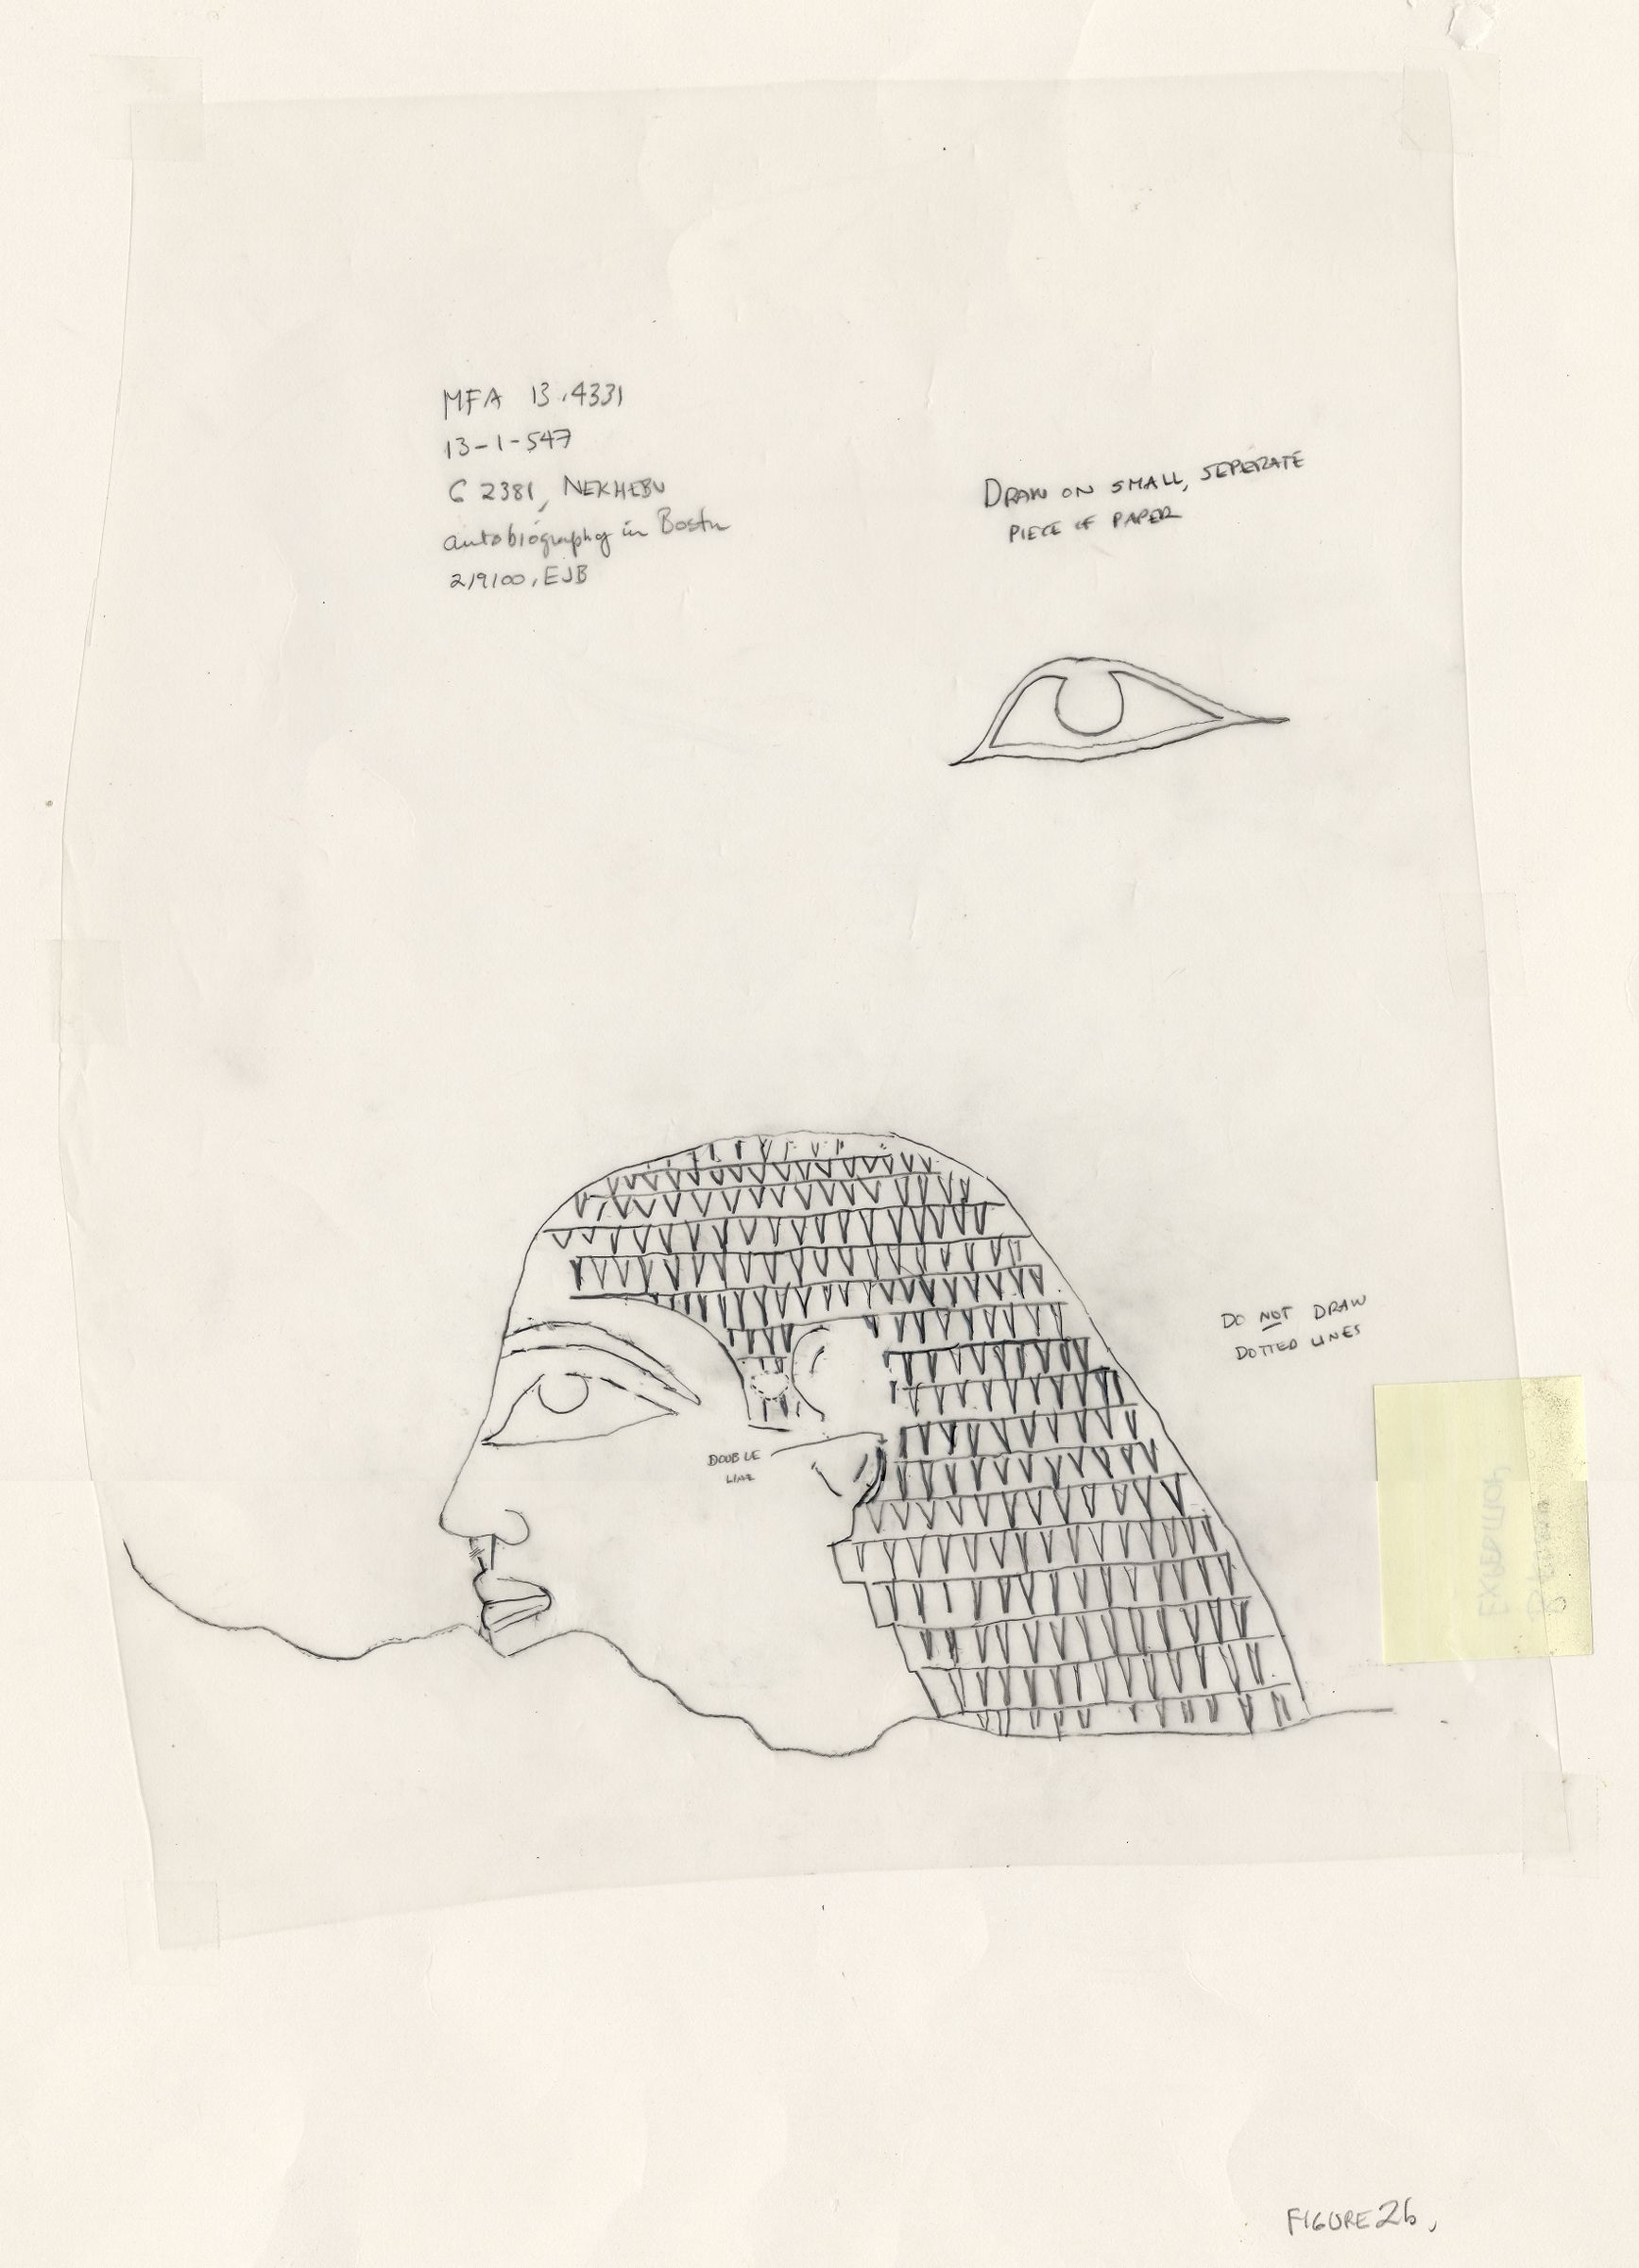 Drawings: G 2381: block of autobiographical inscription